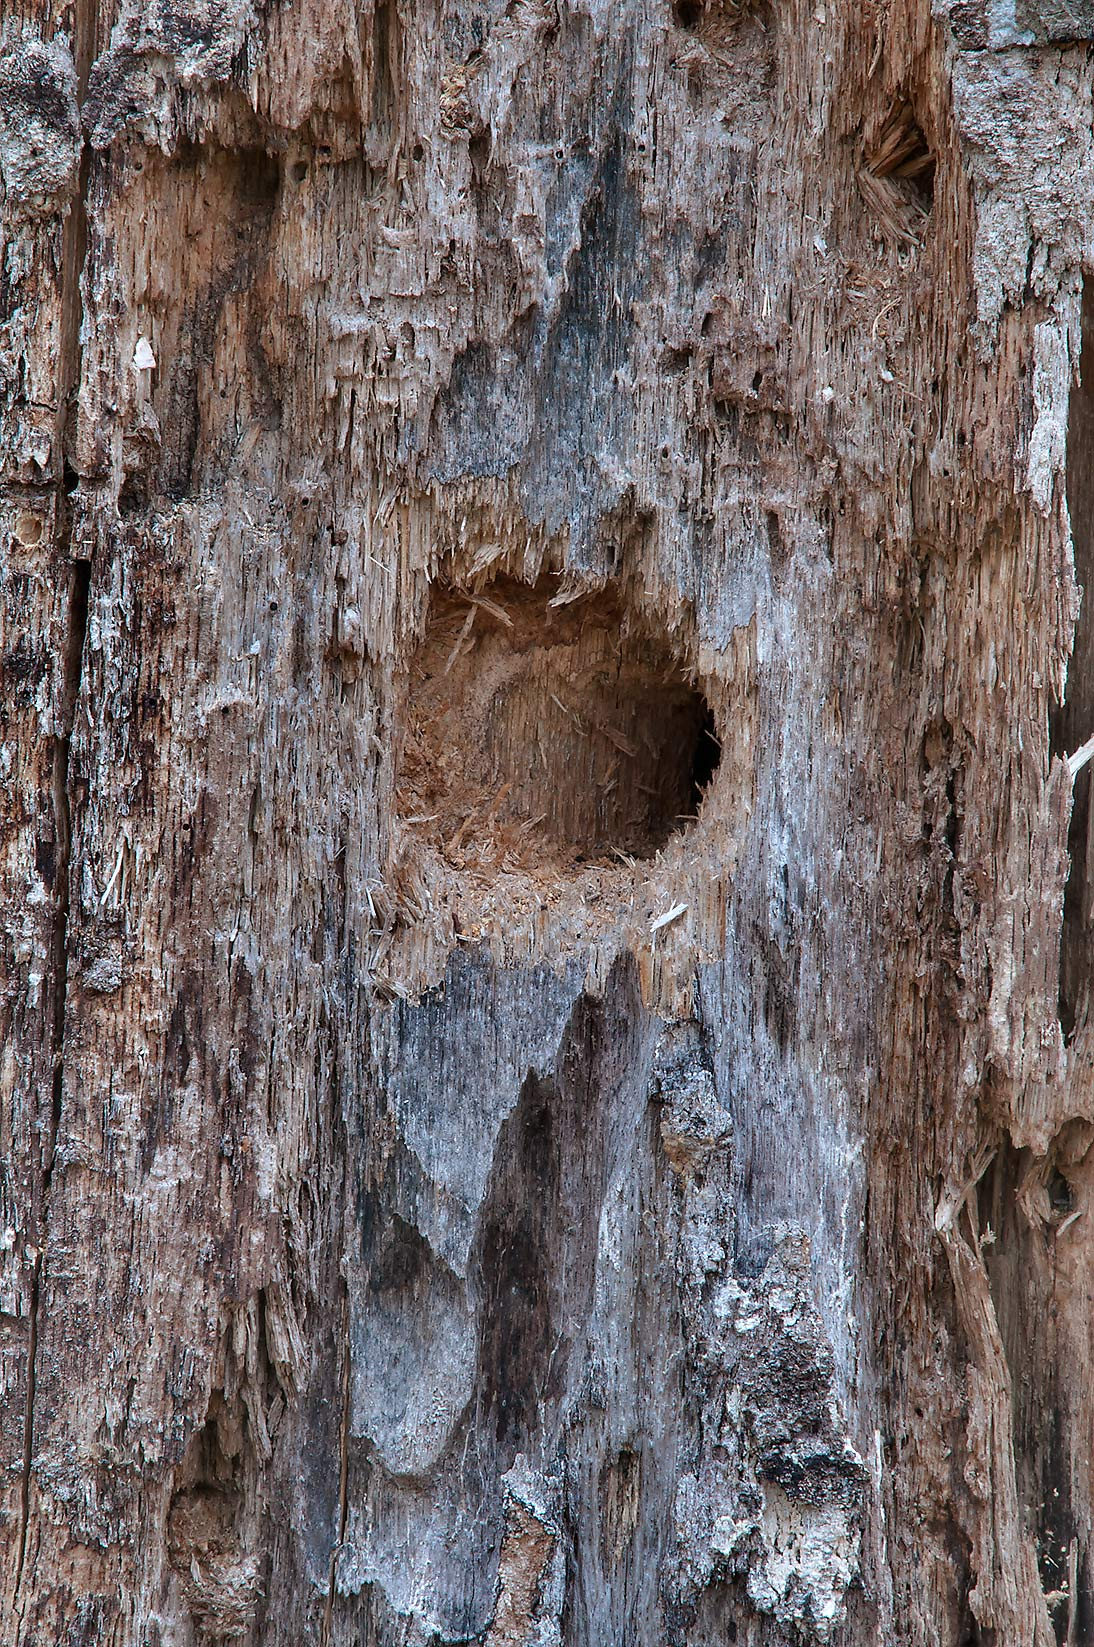 Woodpecker holes in a rotten tree on Raccoon Run...Creek Park. College Station, Texas